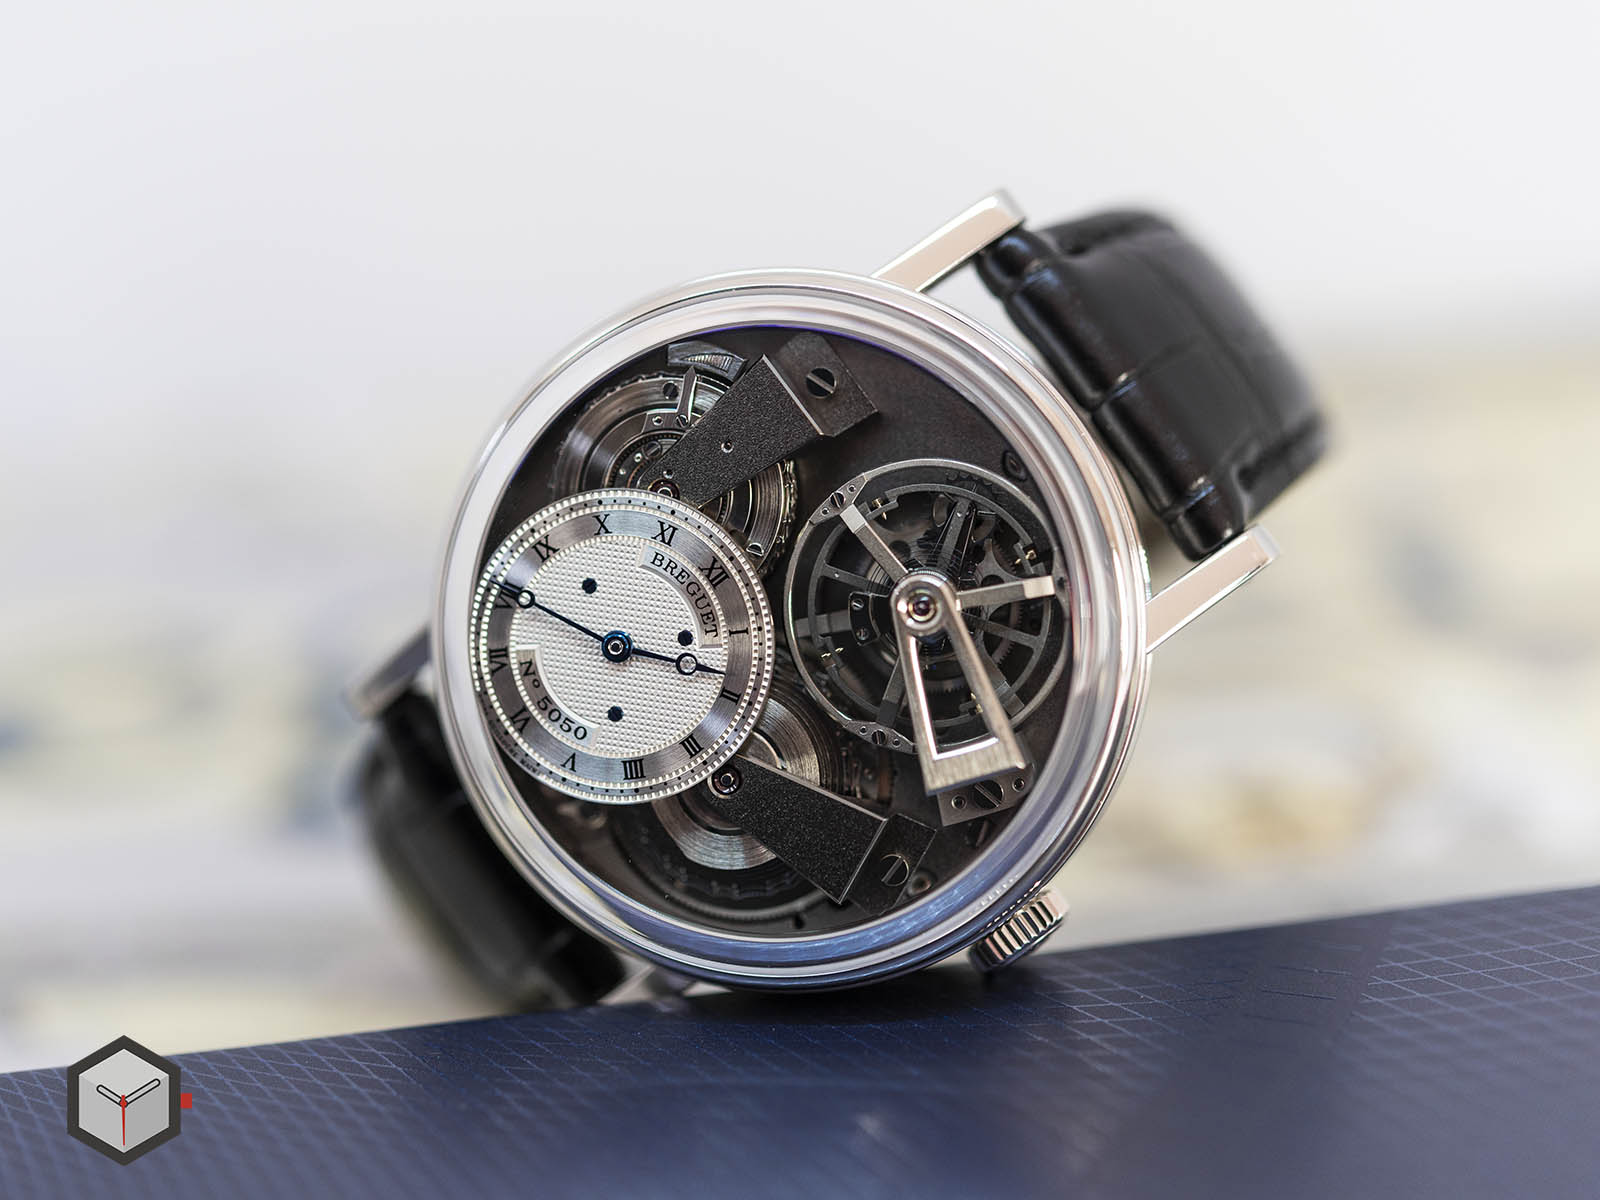 7047pt-11-9zu-breguet-tradition-fusee-tourbillon-3.jpg